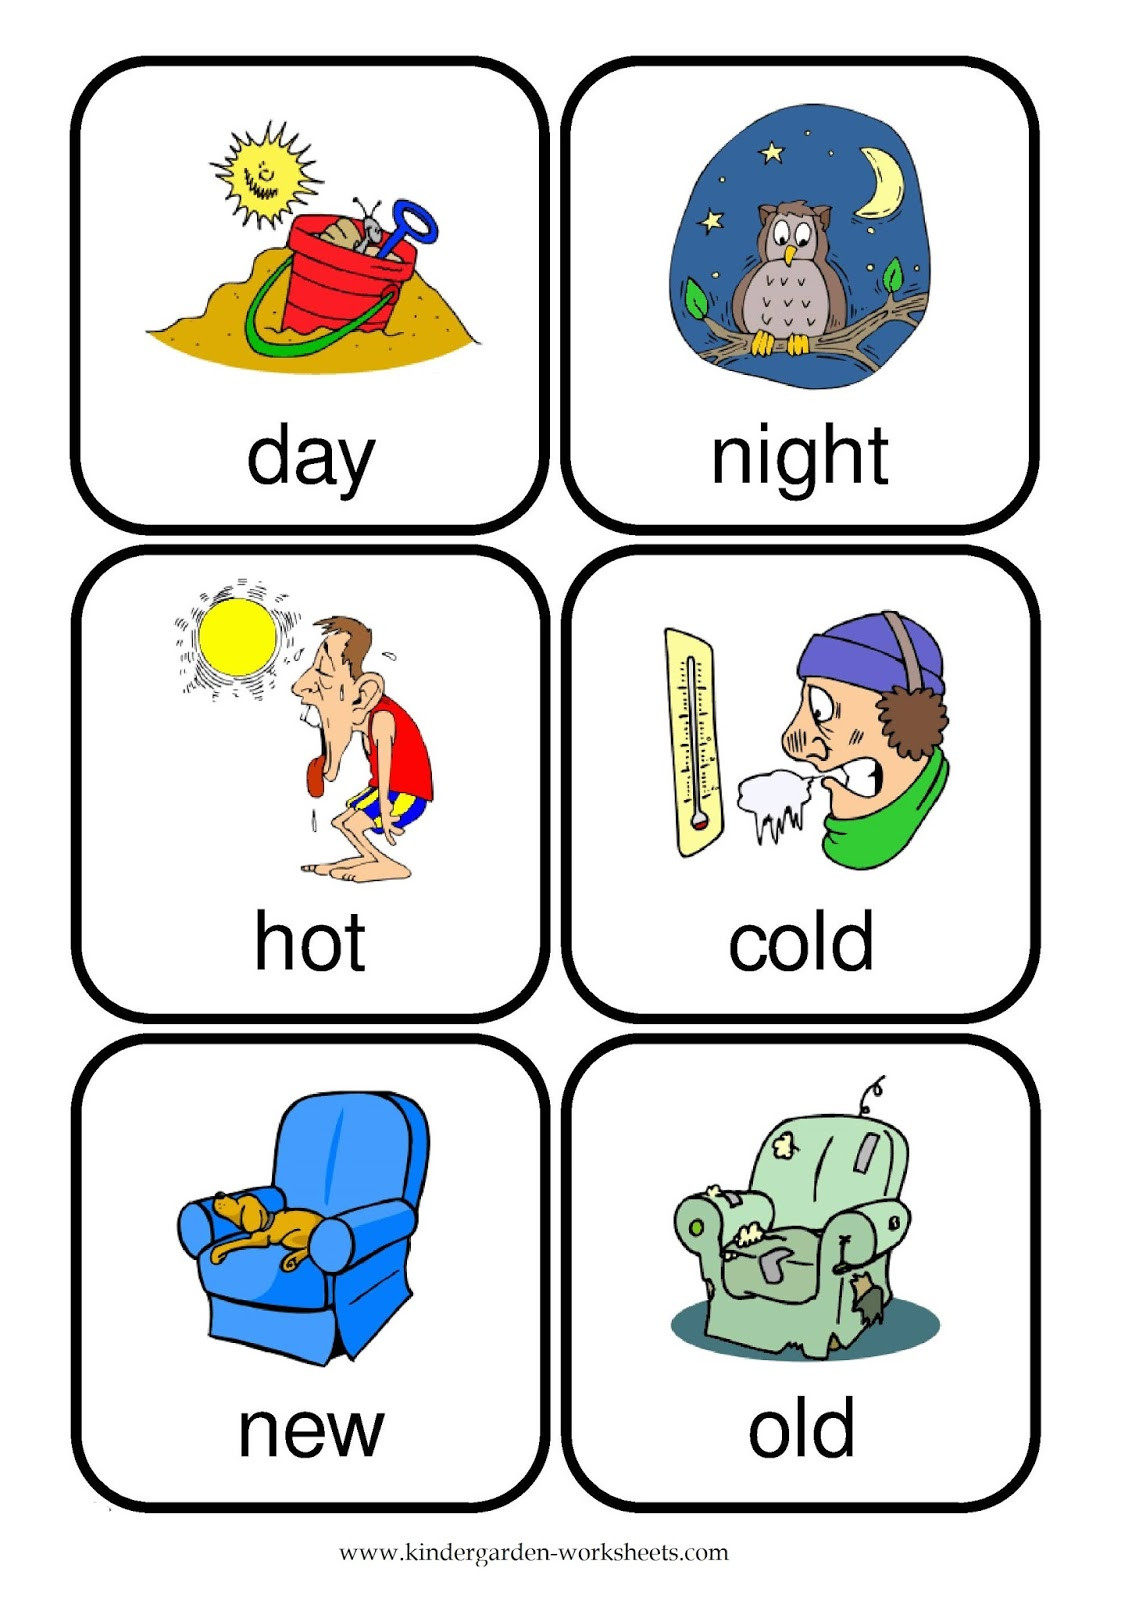 Opposites Preschool Worksheets Kindergarten Worksheets Flashcards Opposite Words